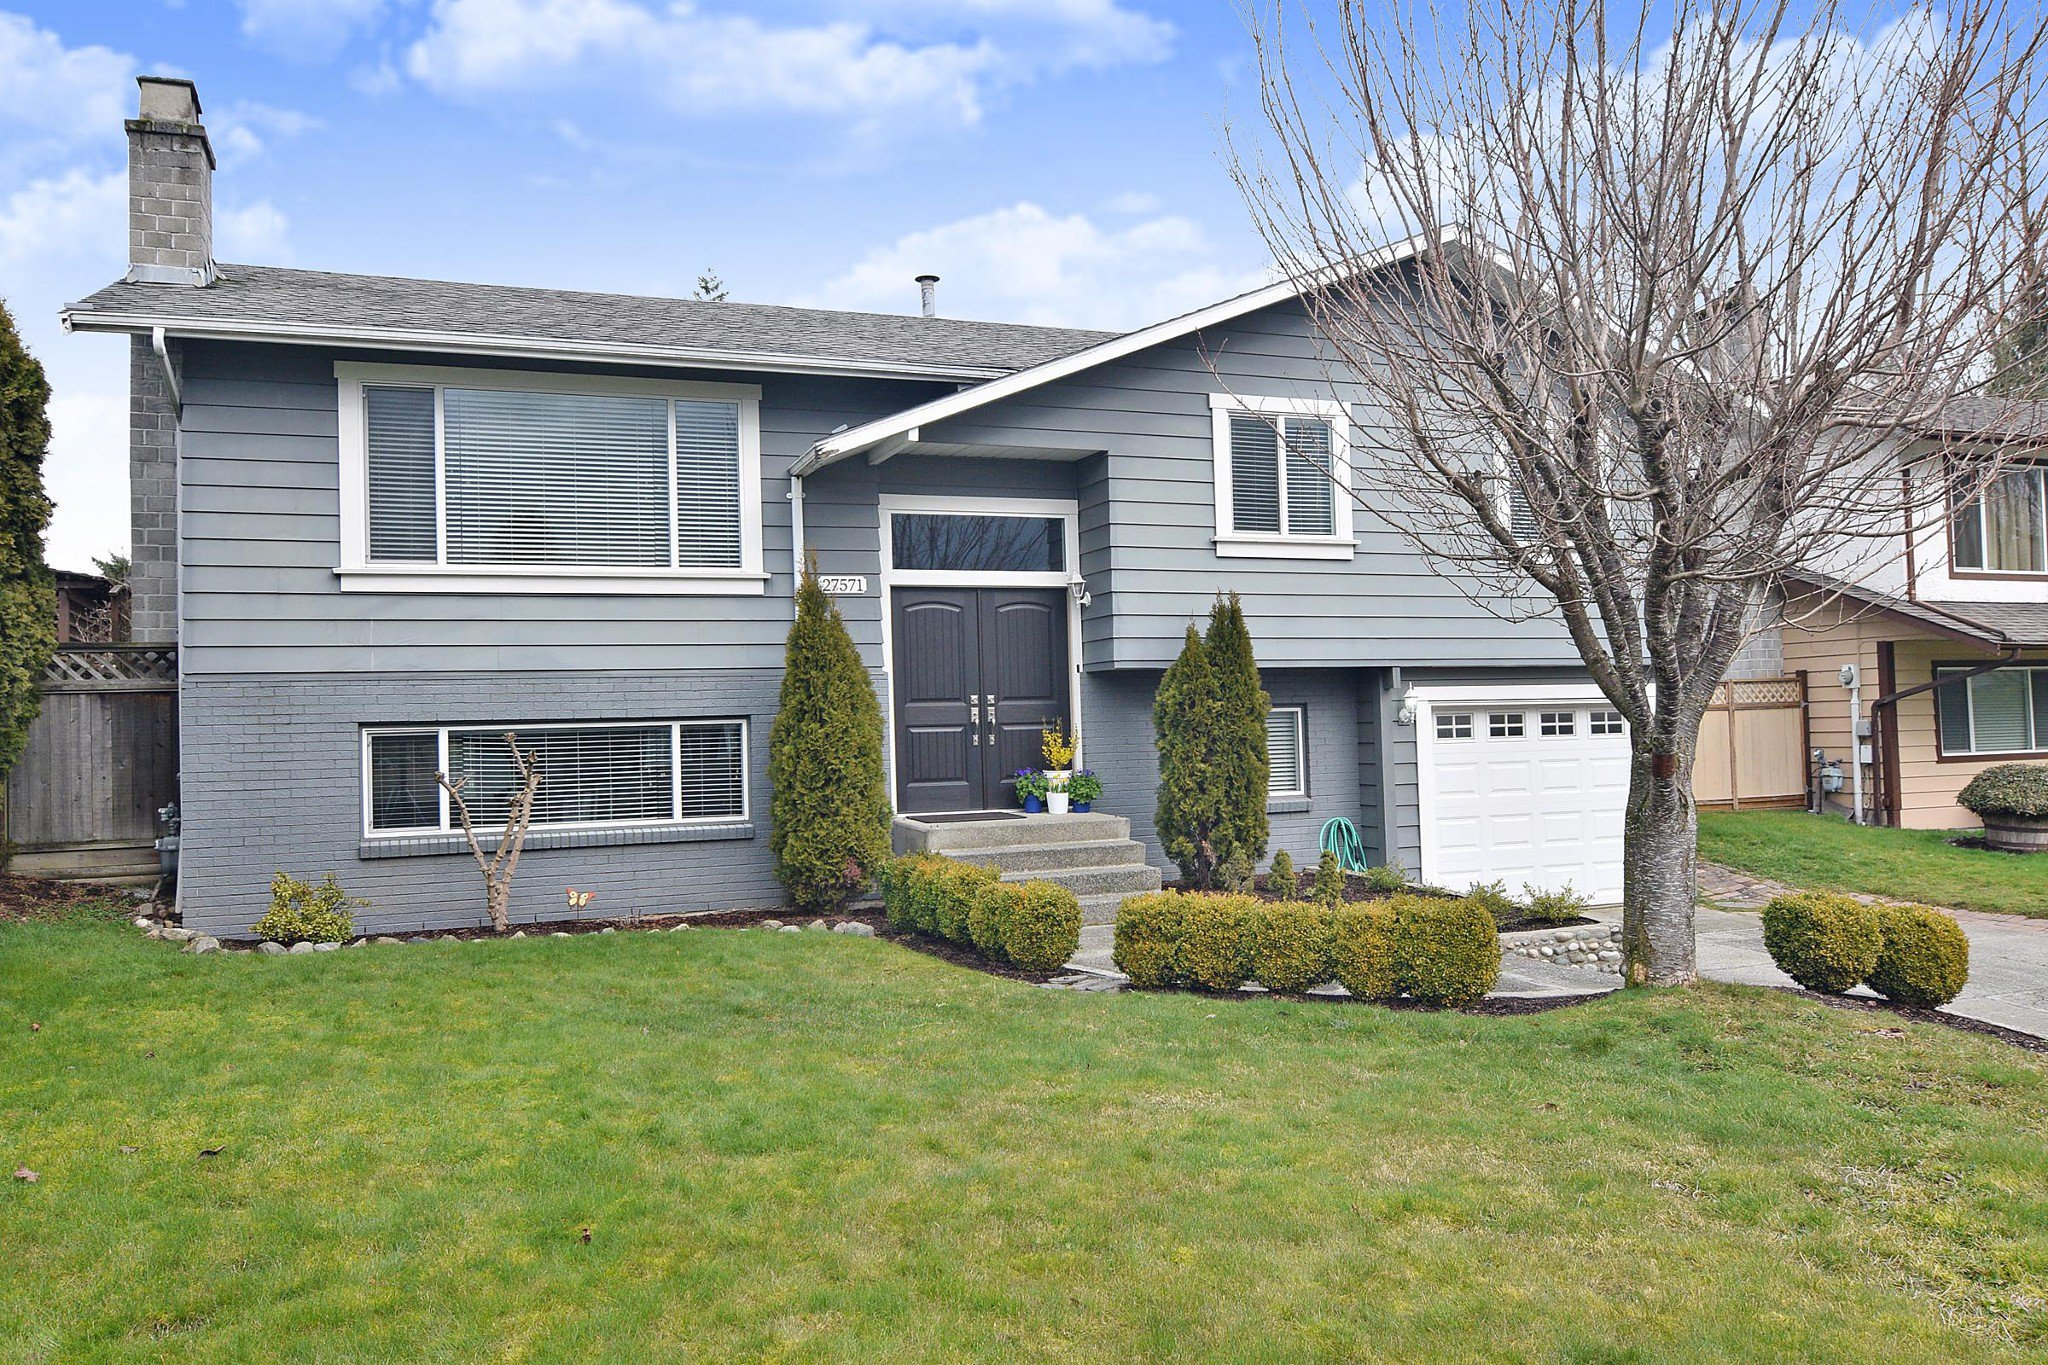 Main Photo: 27571 32A Avenue in Langley: Aldergrove Langley House for sale : MLS®# R2438545